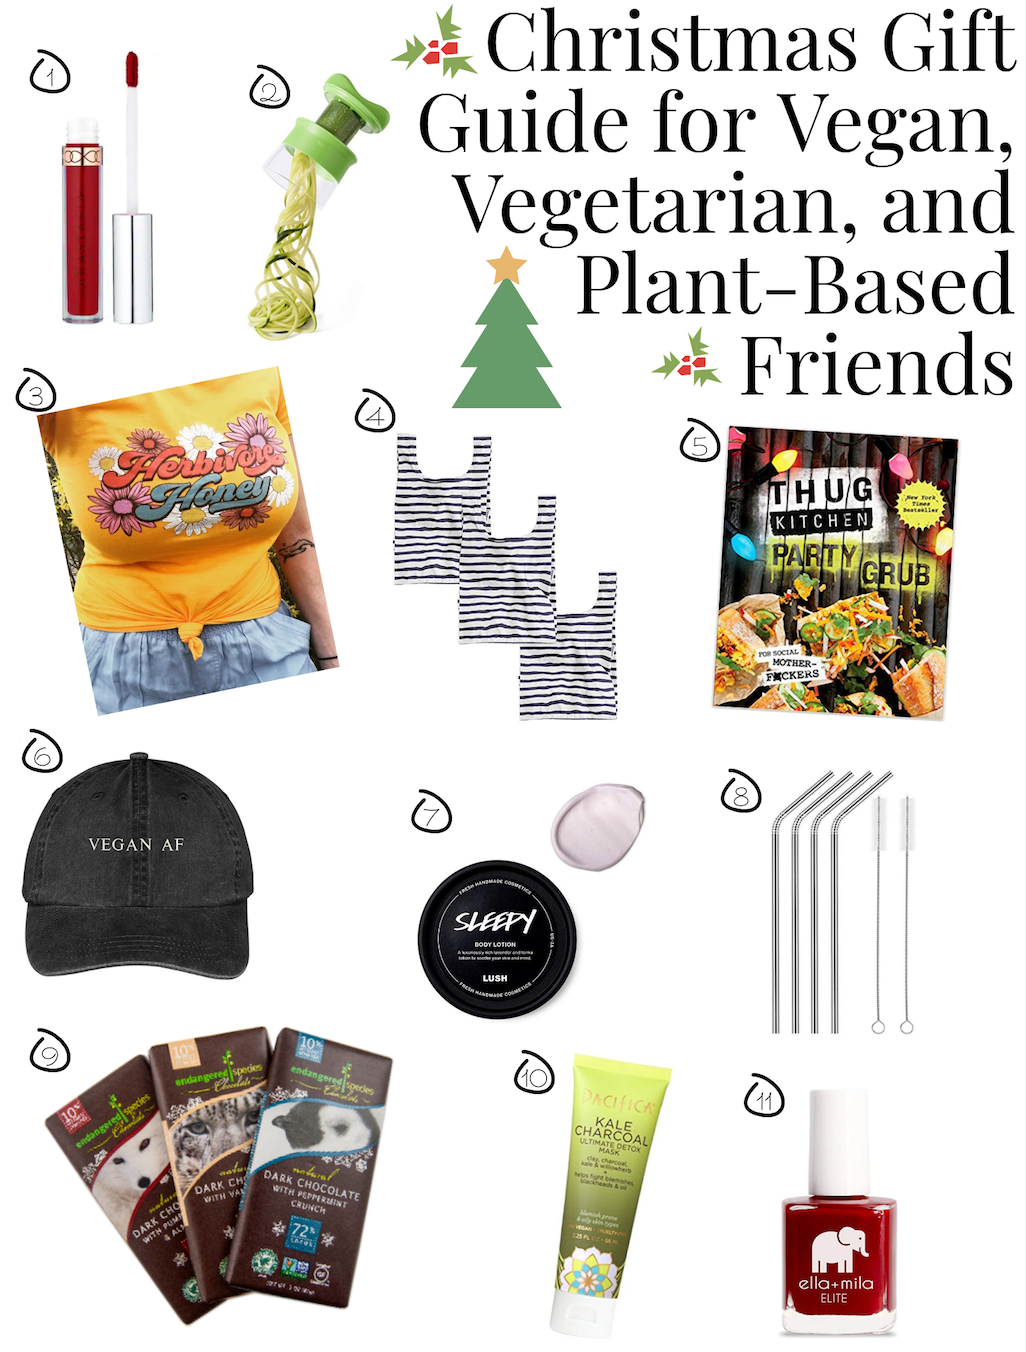 Christmas Gift Guide for Vegan, Vegetarian, and Plant-Based Friends